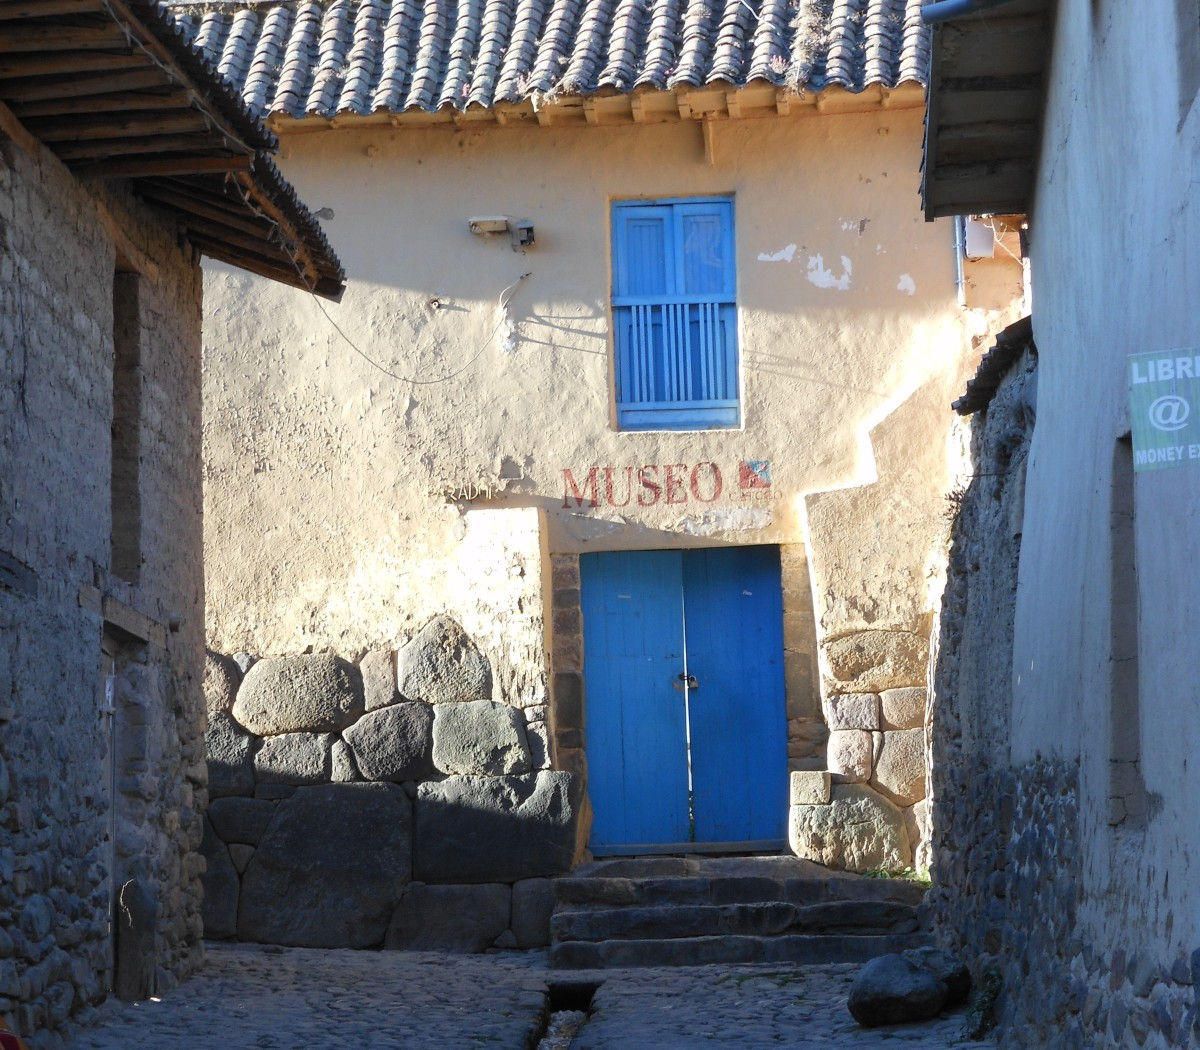 THE BACKSTREETS OF OLLANTYTAMBO. PERU